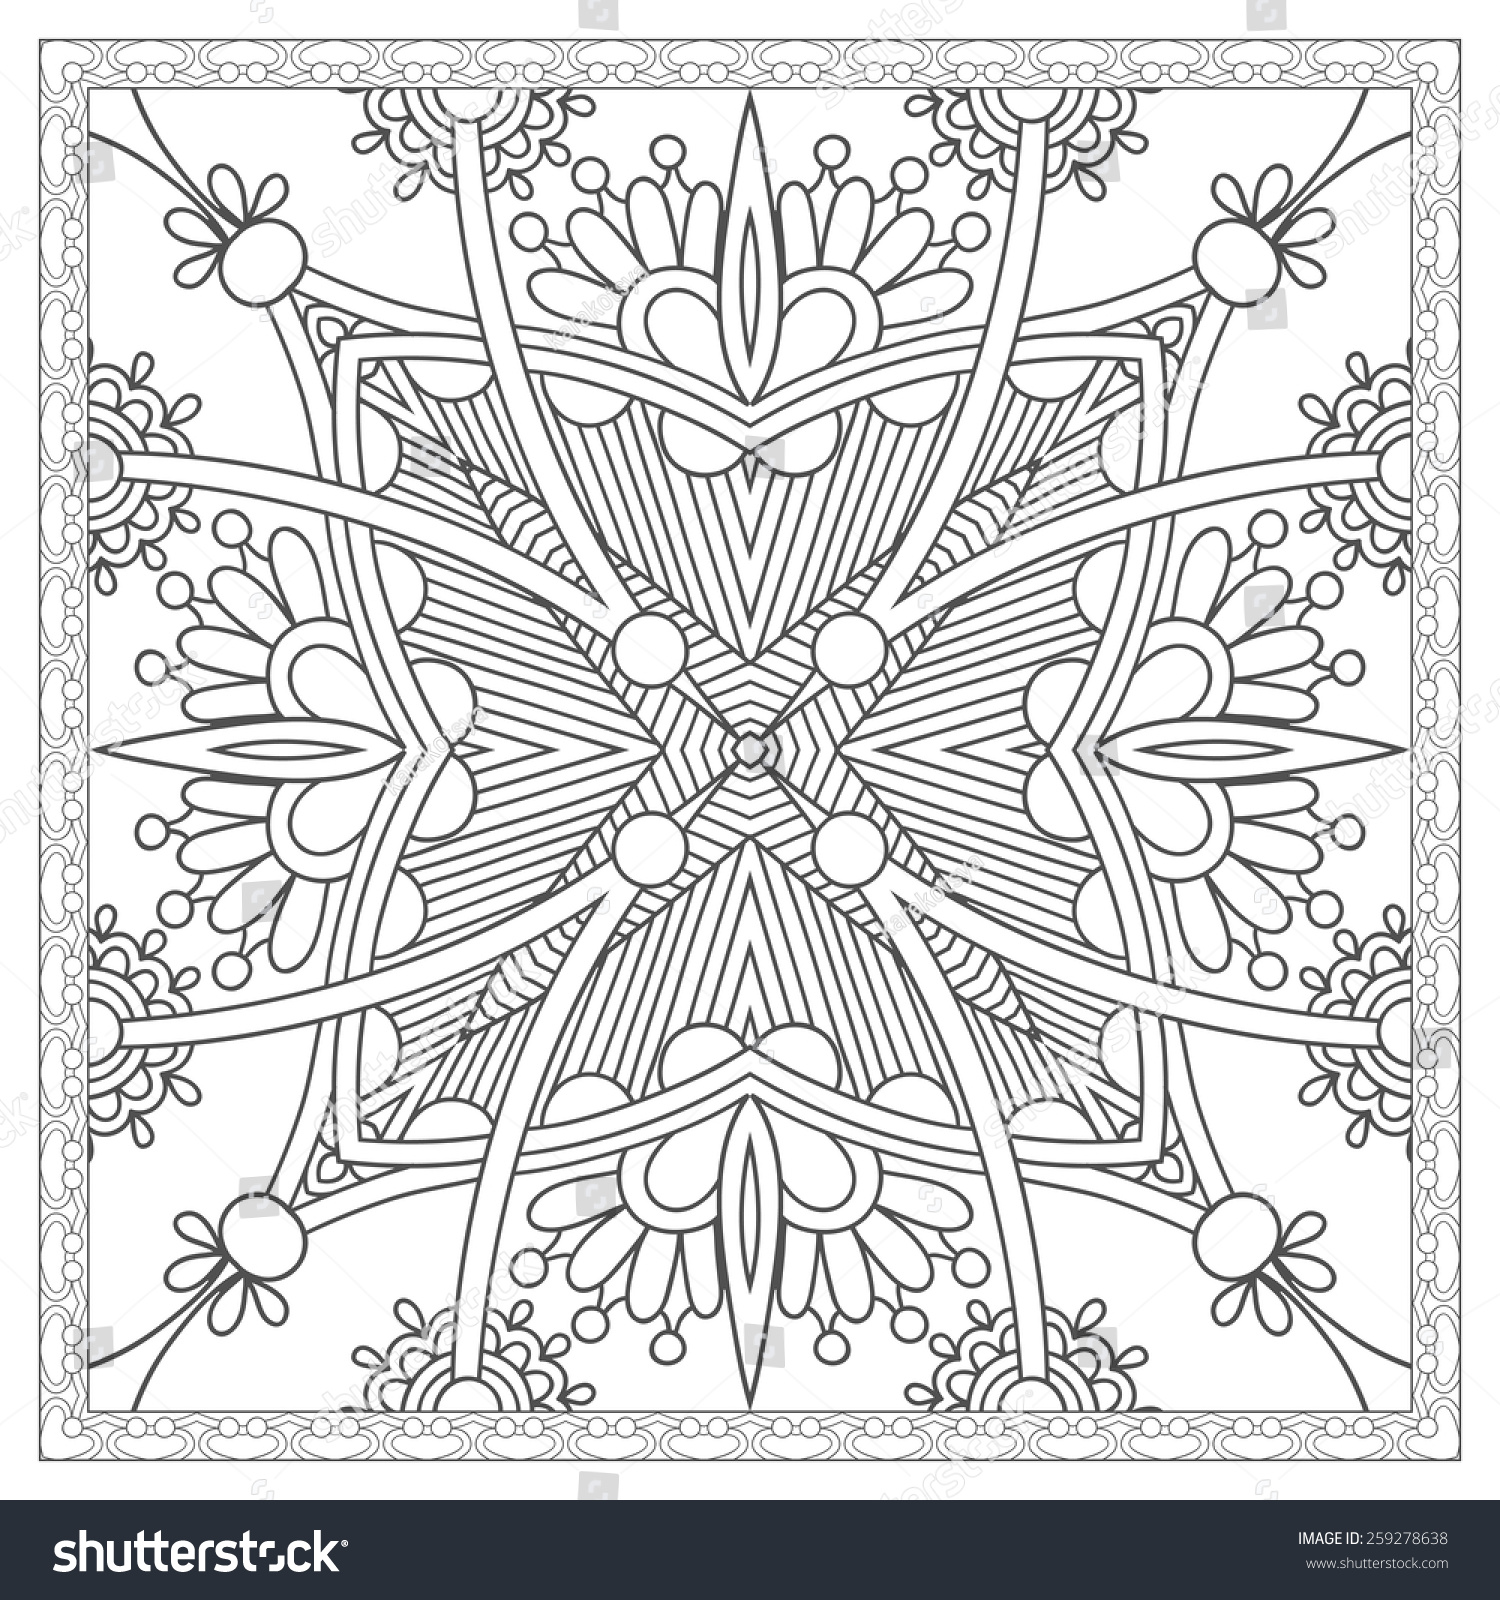 Unique coloring book square page for adults floral for Unique coloring pages for adults